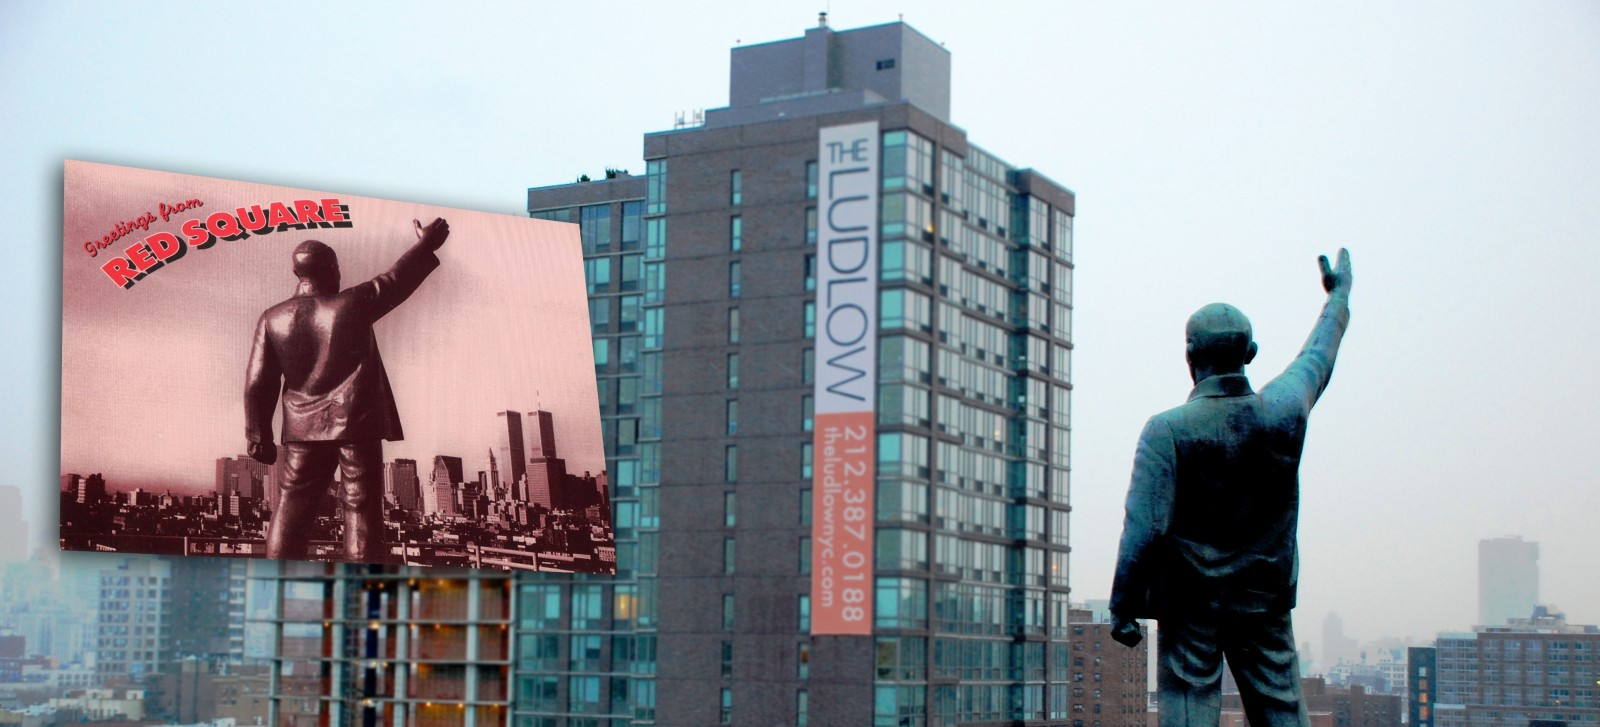 How Lenin and Red Square ended up in NYC